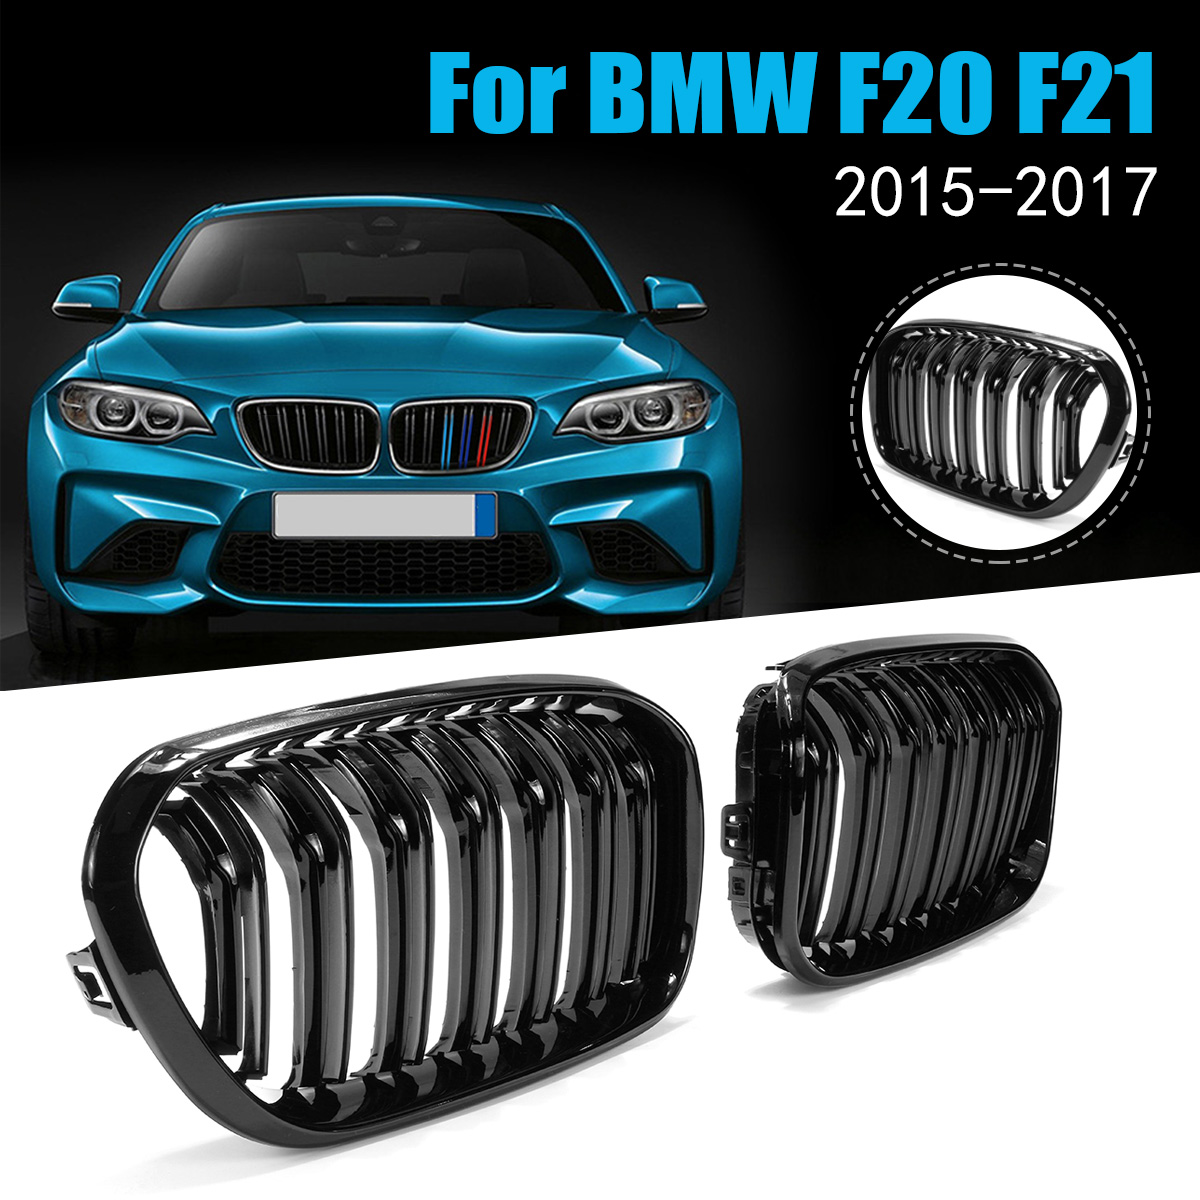 Pair Gloss Matt Black Double Slat Line M Color Front Kidney Grill Grille Car Styling Racing Grill For BMW F20 F21 1 Series 15-16 цена 2017